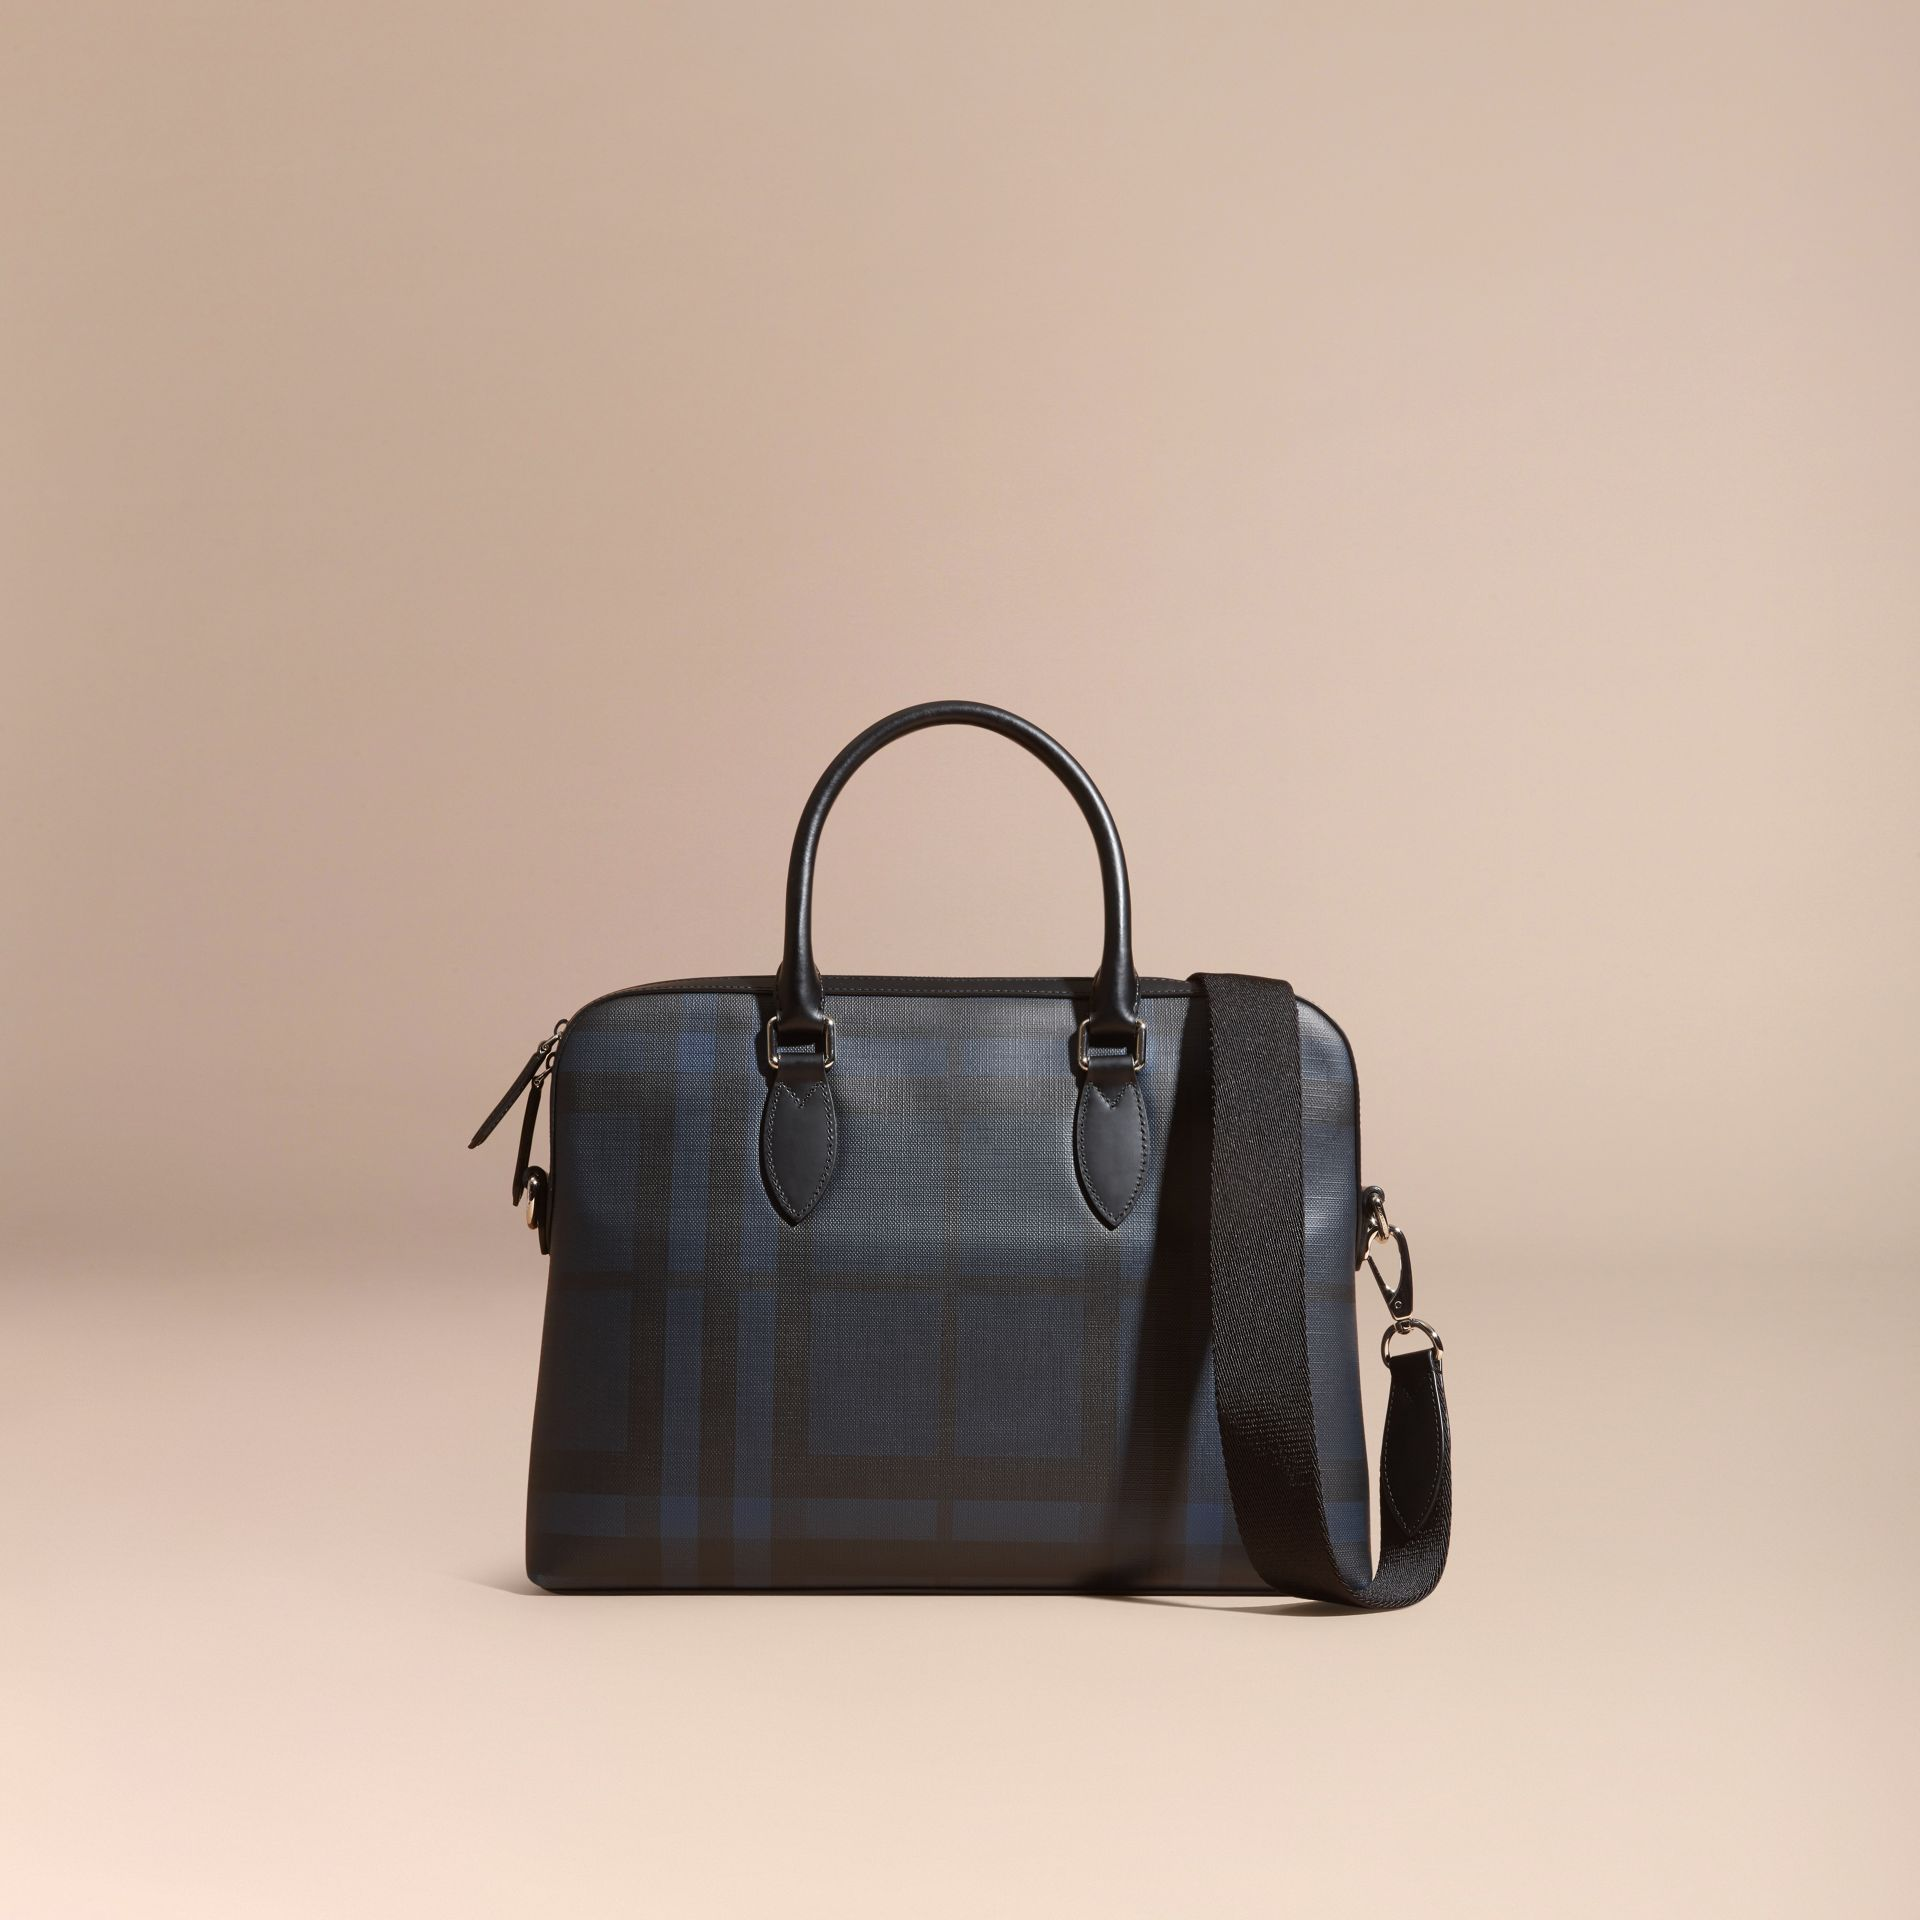 Sac The Barrow fin avec motif London check (Marine/noir) - photo de la galerie 9